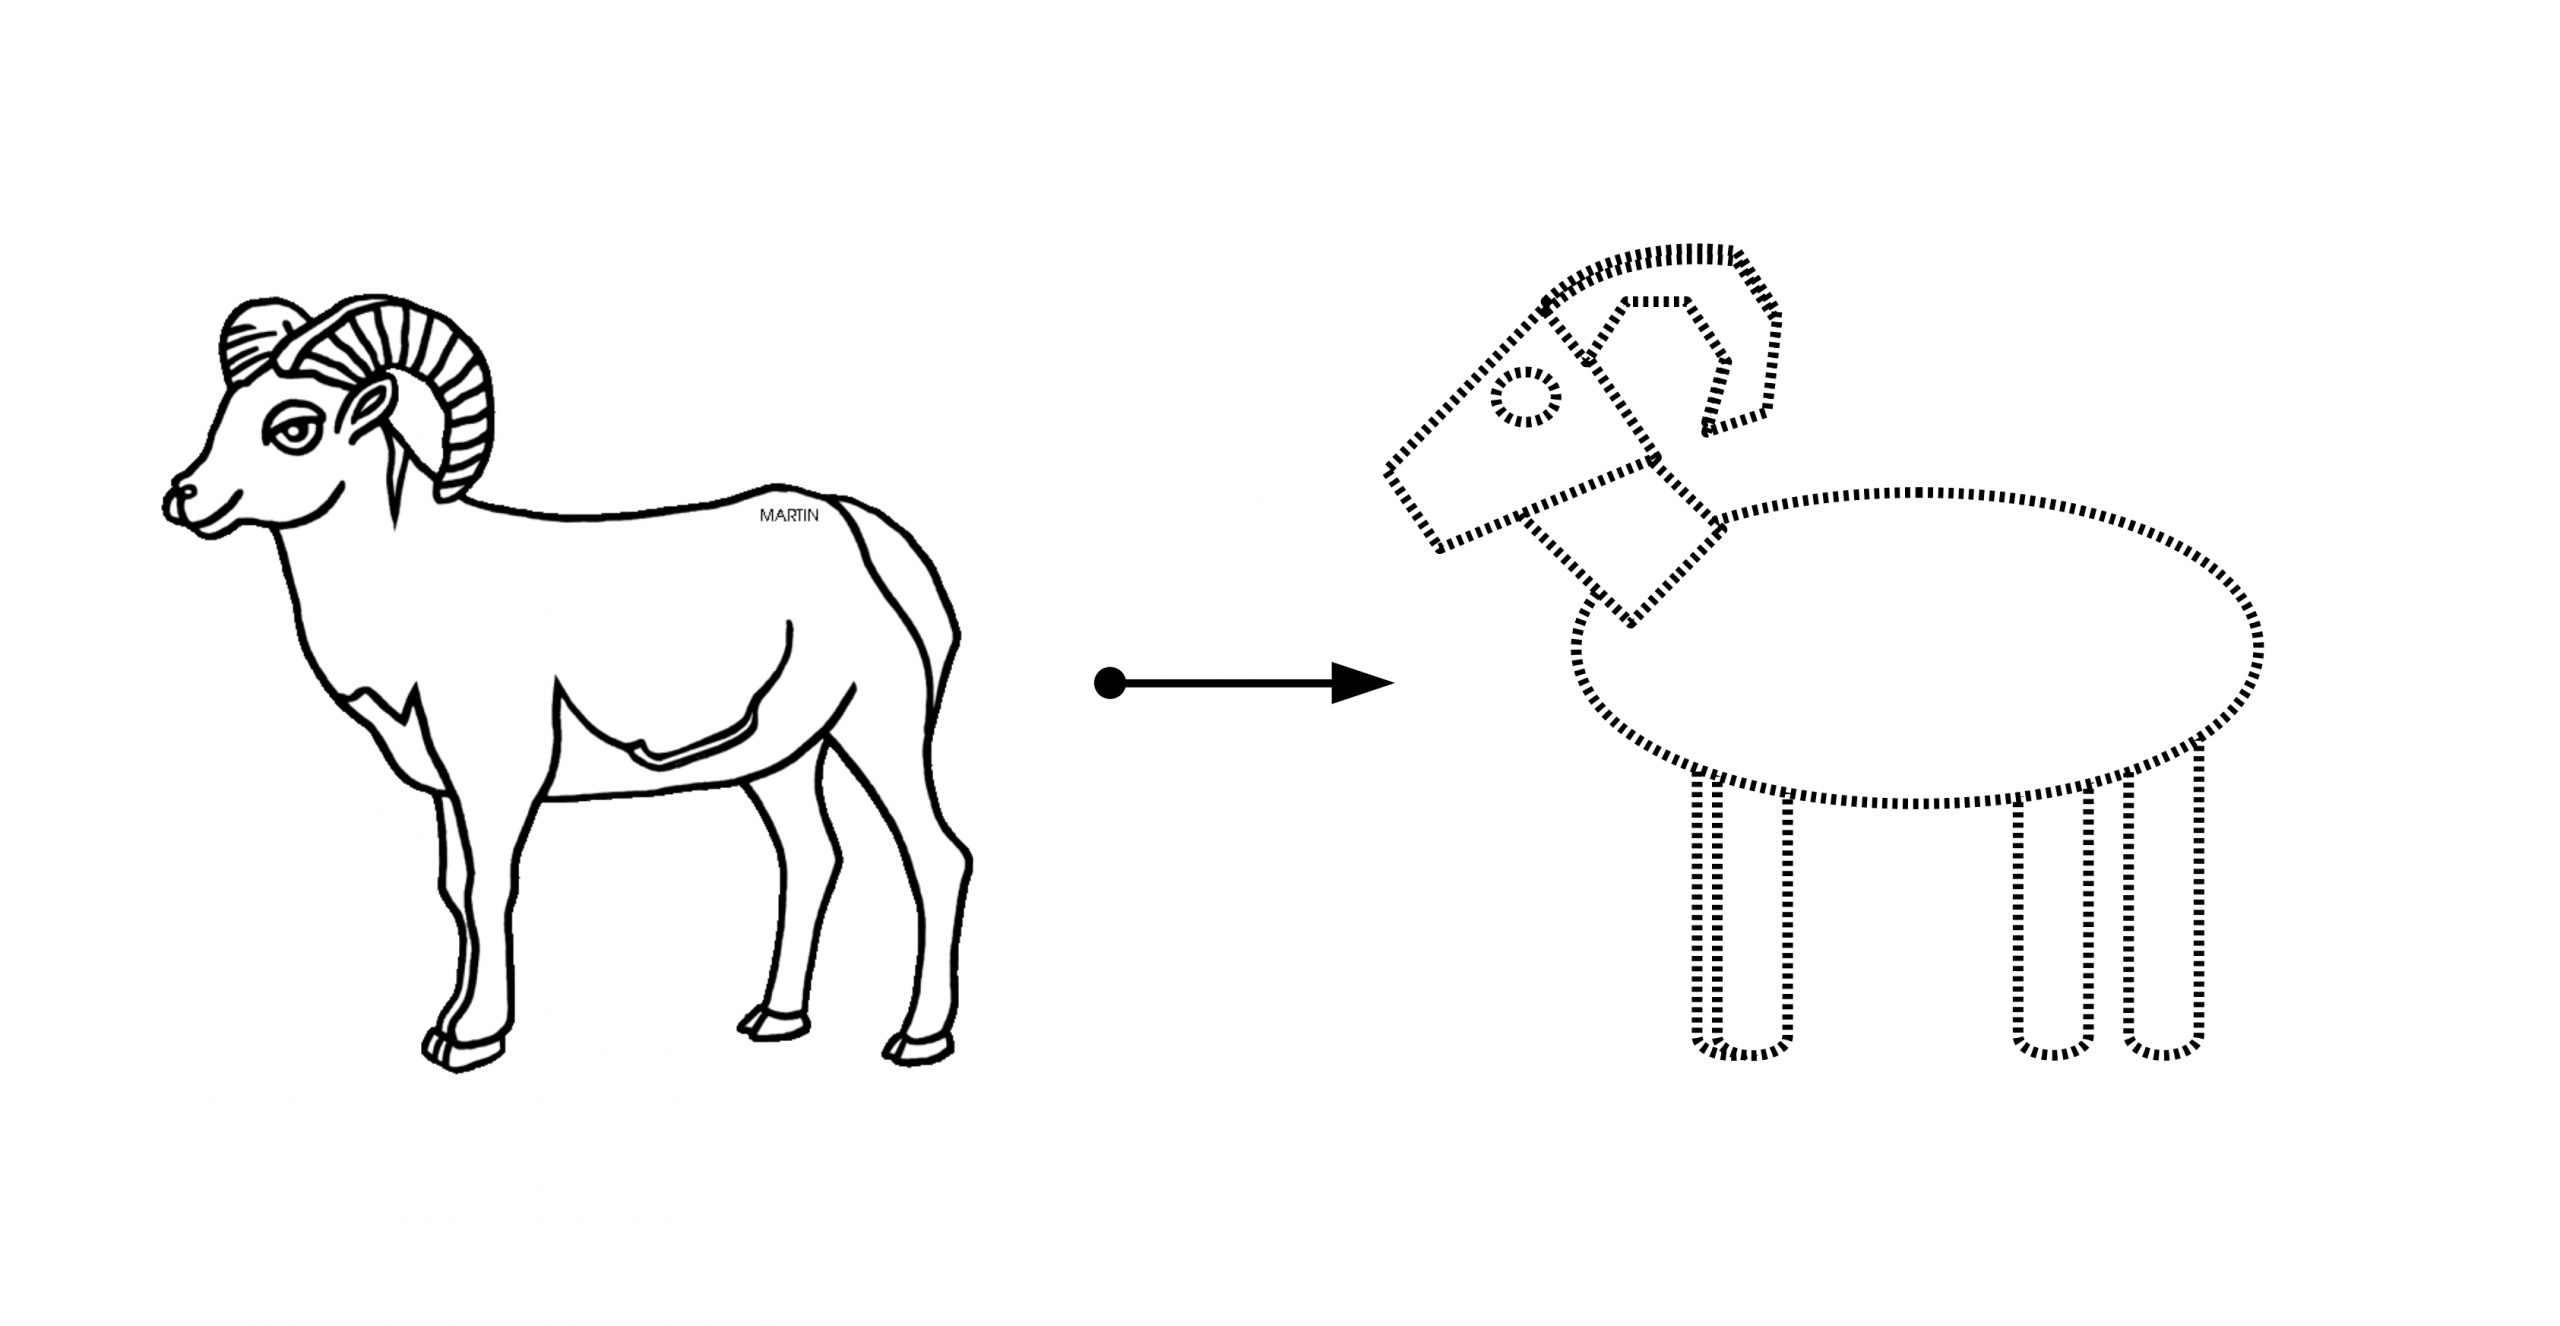 Line drawing showing a sheep being represented by simple shapes for surface area estimation.